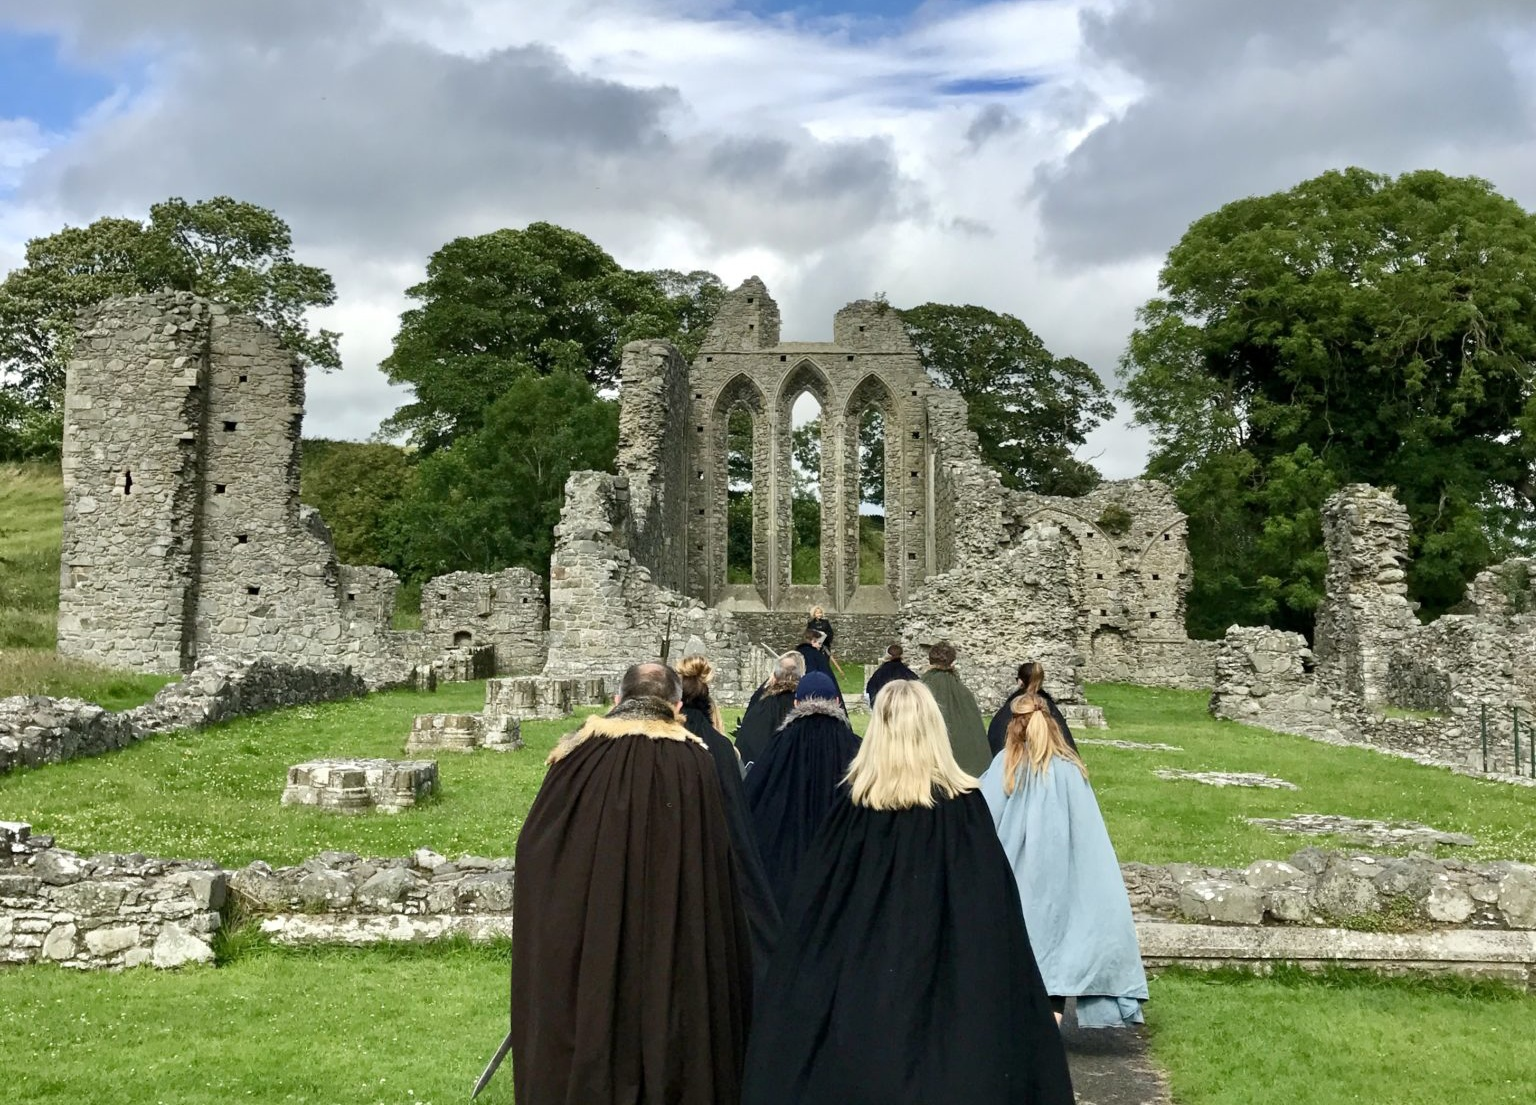 Inch Abbey, Game of Thrones Tours, Ireland